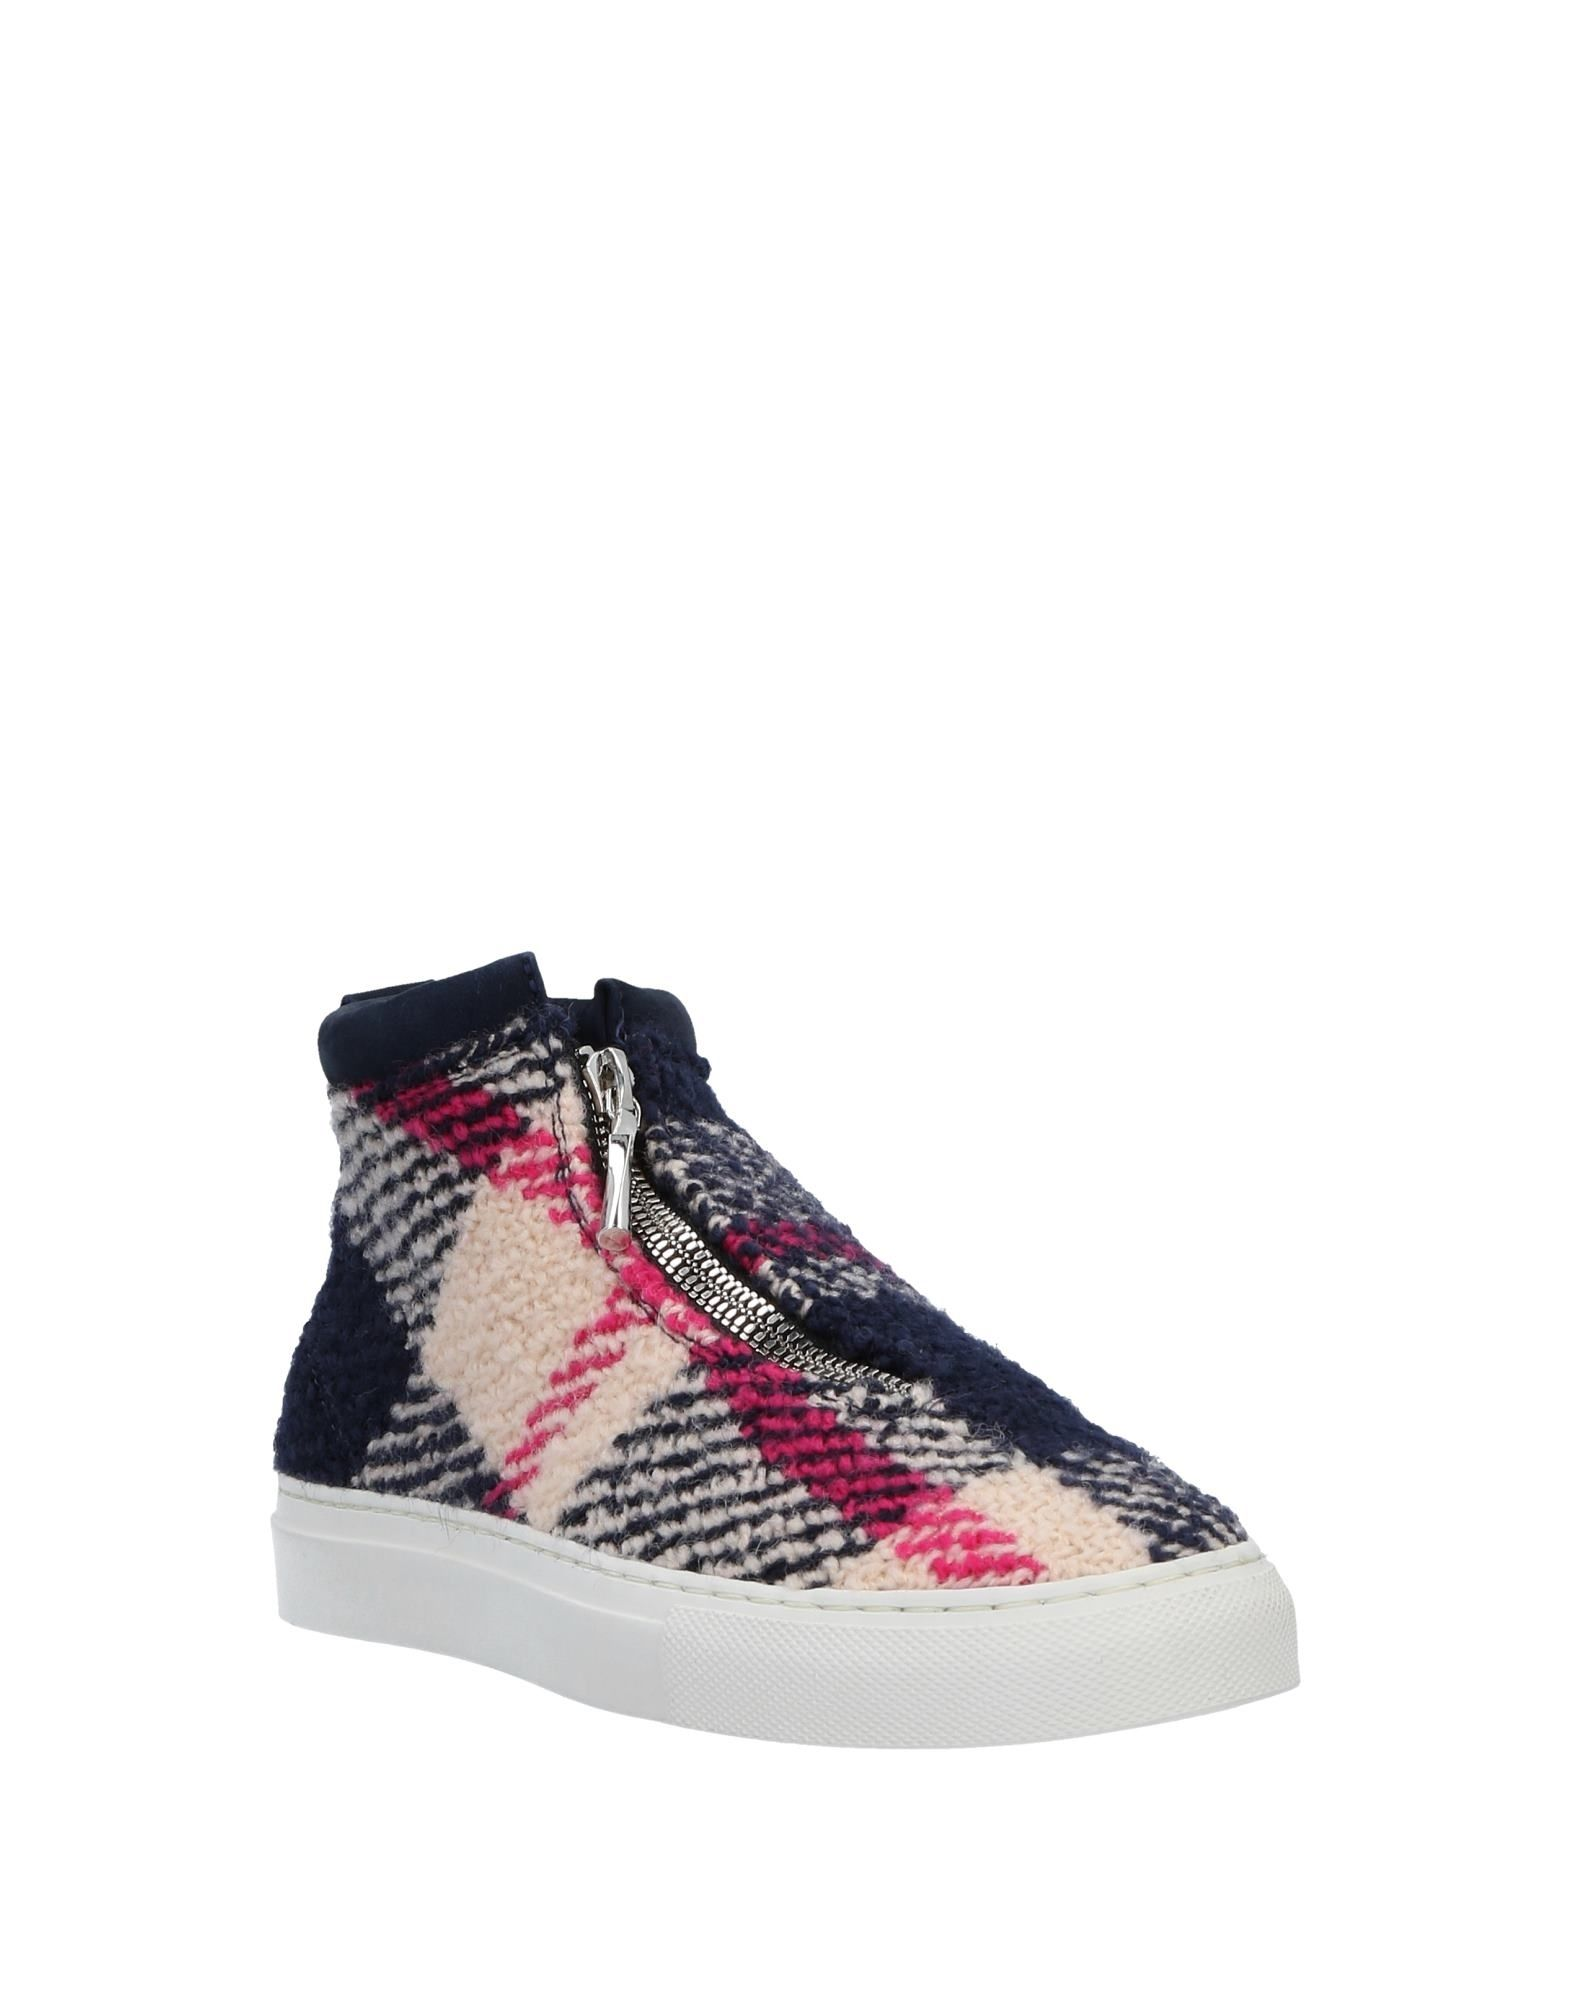 Diemme Sneakers Sneakers Sneakers - Women Diemme Sneakers online on  Canada - 11500645TR 7cb931